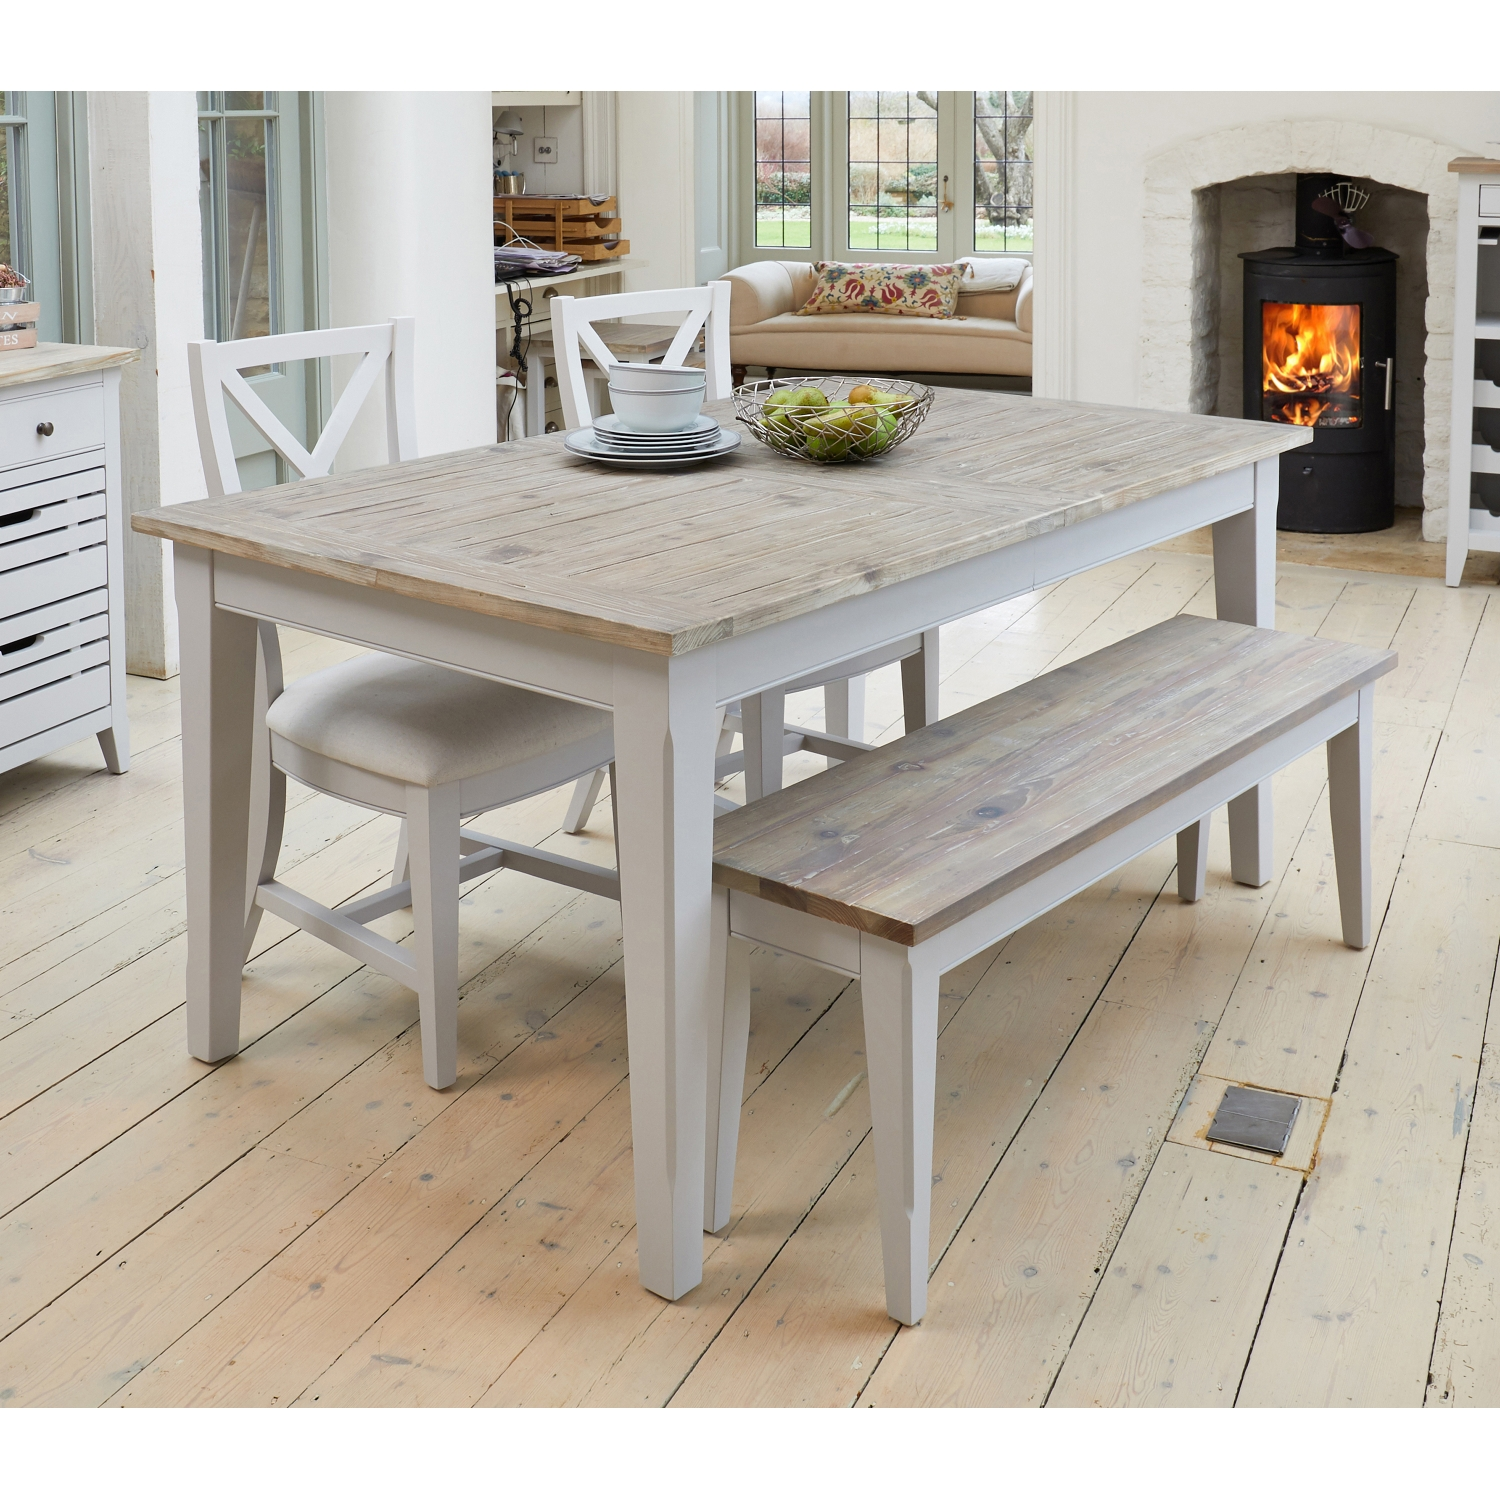 Benson Grey Painted Furniture Extending Dining Table Two